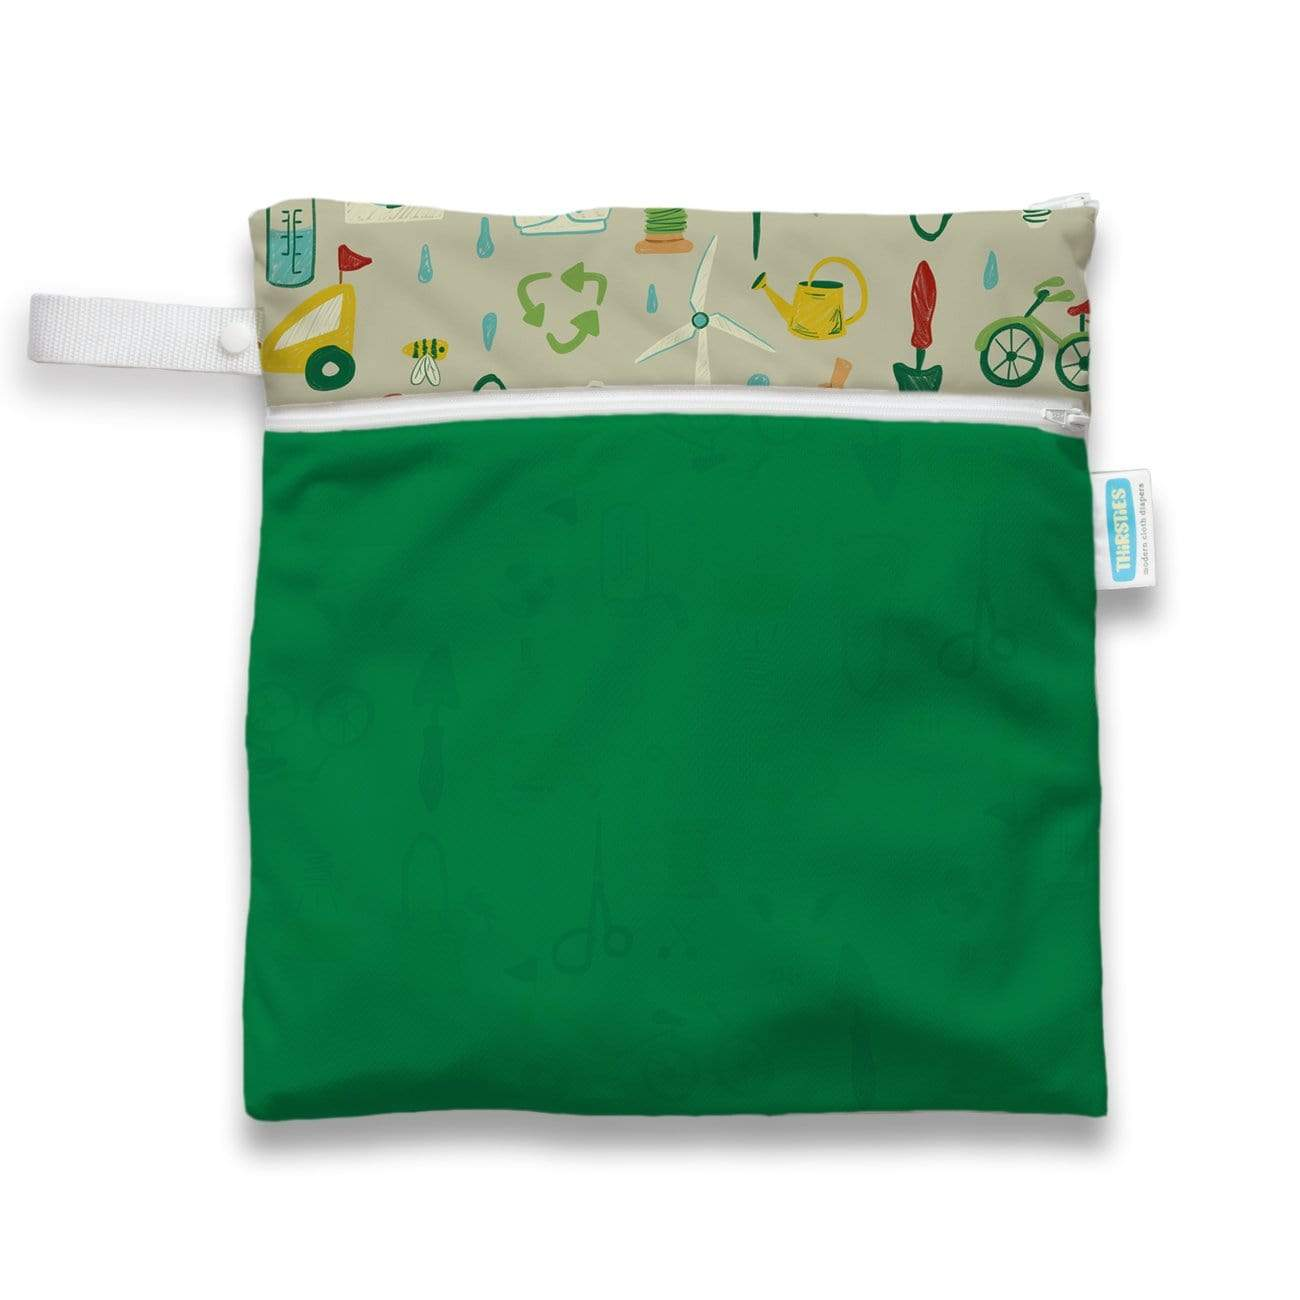 Thirsties Wet/Dry Bag - Green Scene